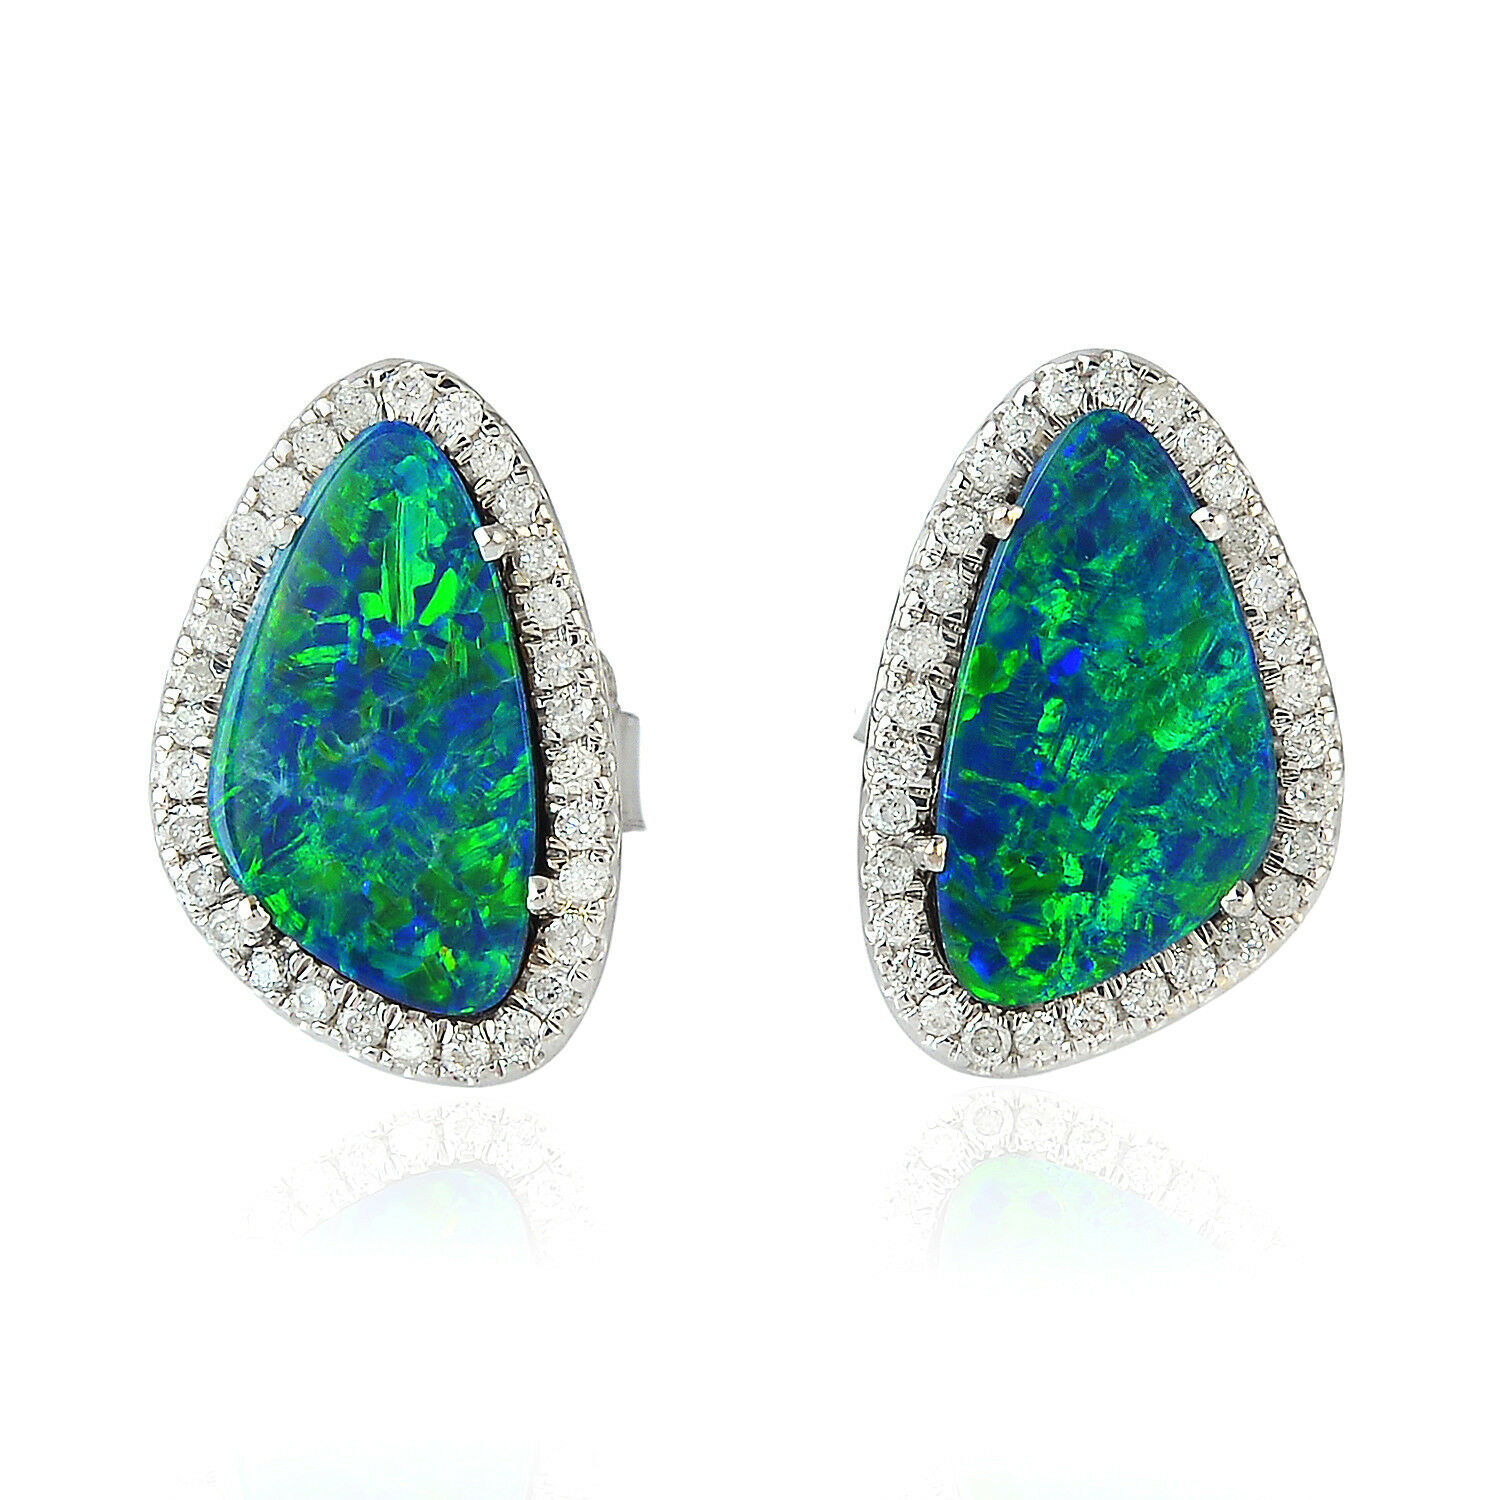 0.3ct Pave Diamond Opal Doublet Stud Earrings 18k White gold Girl's Gift Jewelry